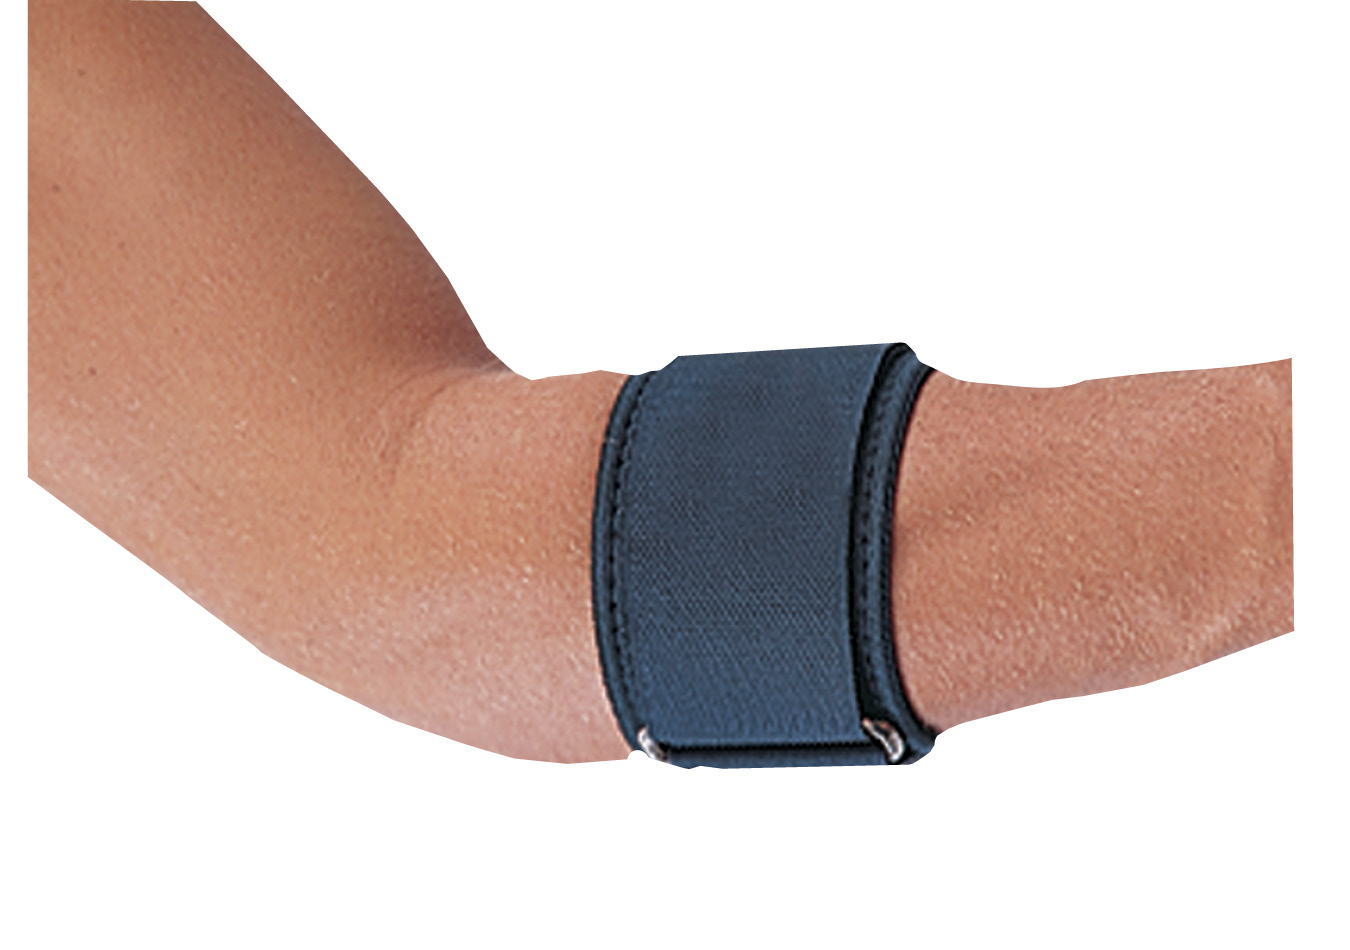 10-75140-3, Neoprene Tennis Elbow Support, Mutual Industries